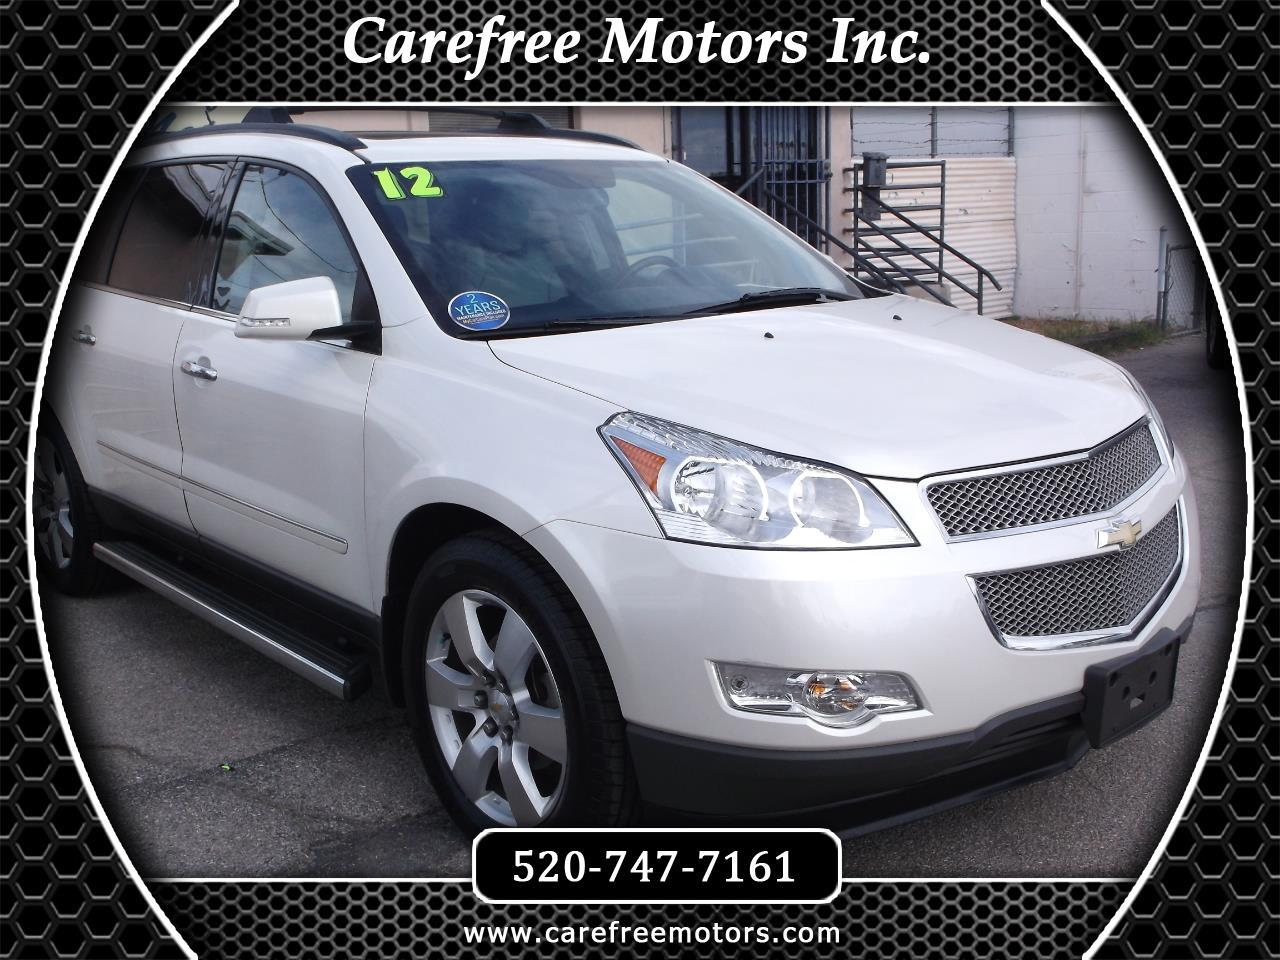 Used Cars For Sale Tucson Az 85710 Carefree Motors Inc